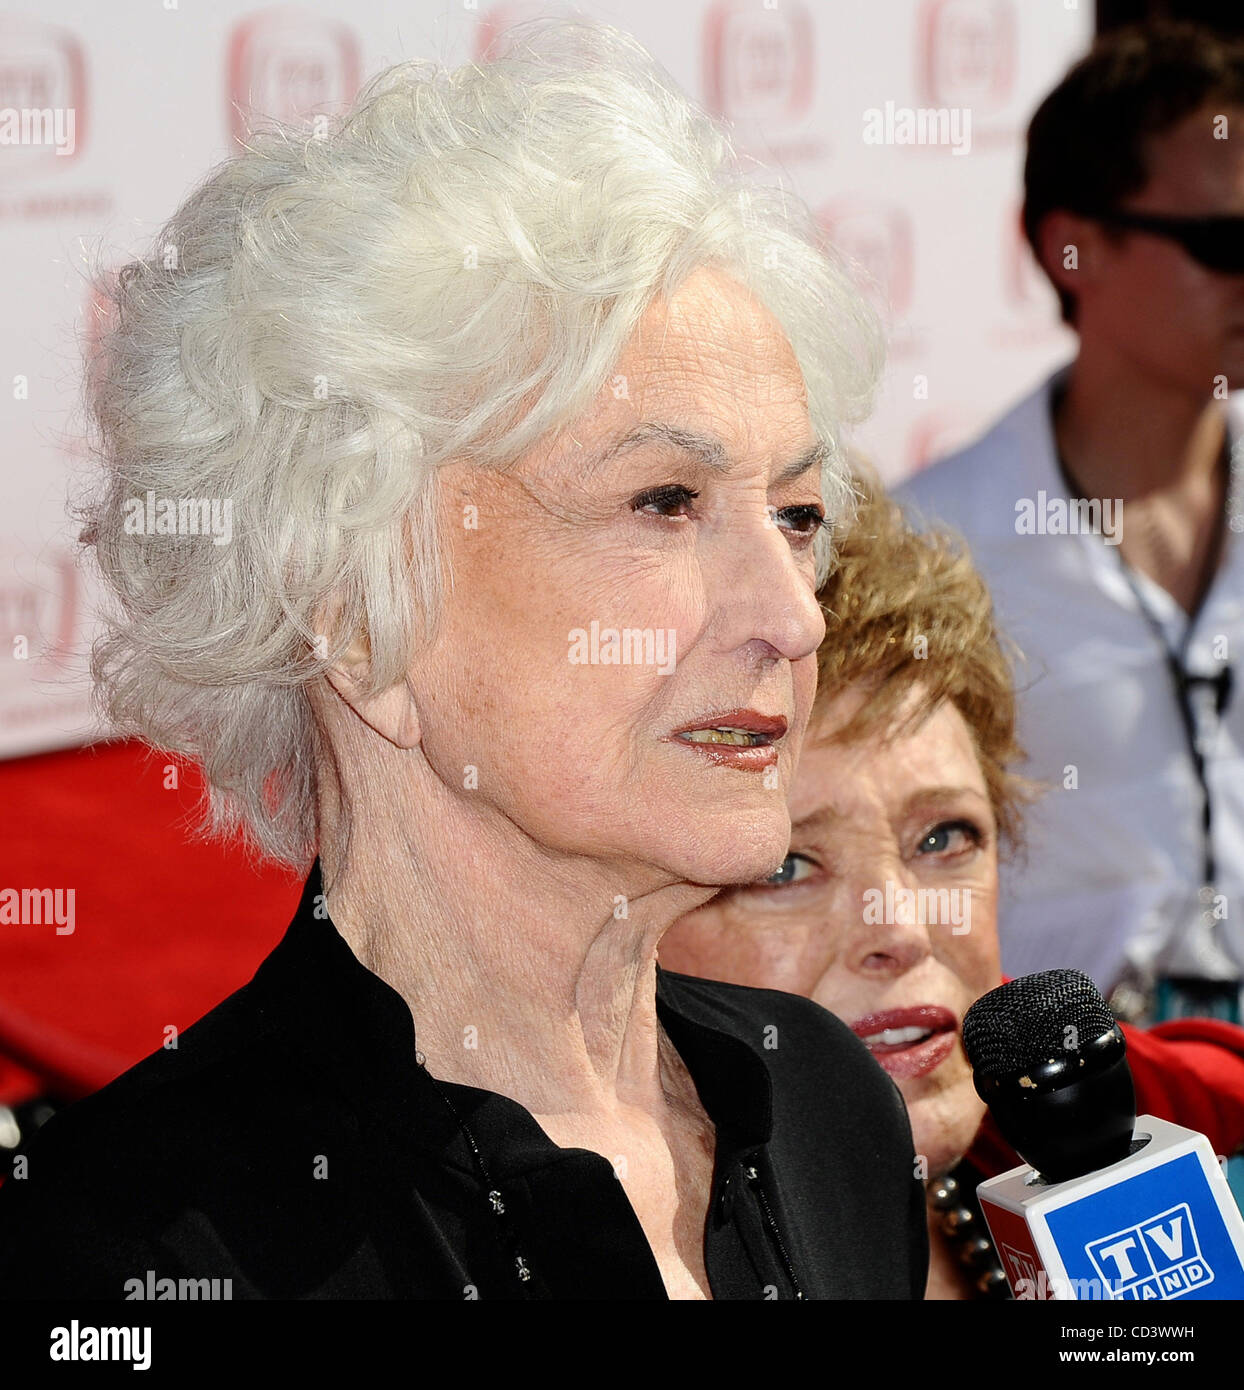 Bea Arthur Arrive At The 6th Annual Tv Land Awards In